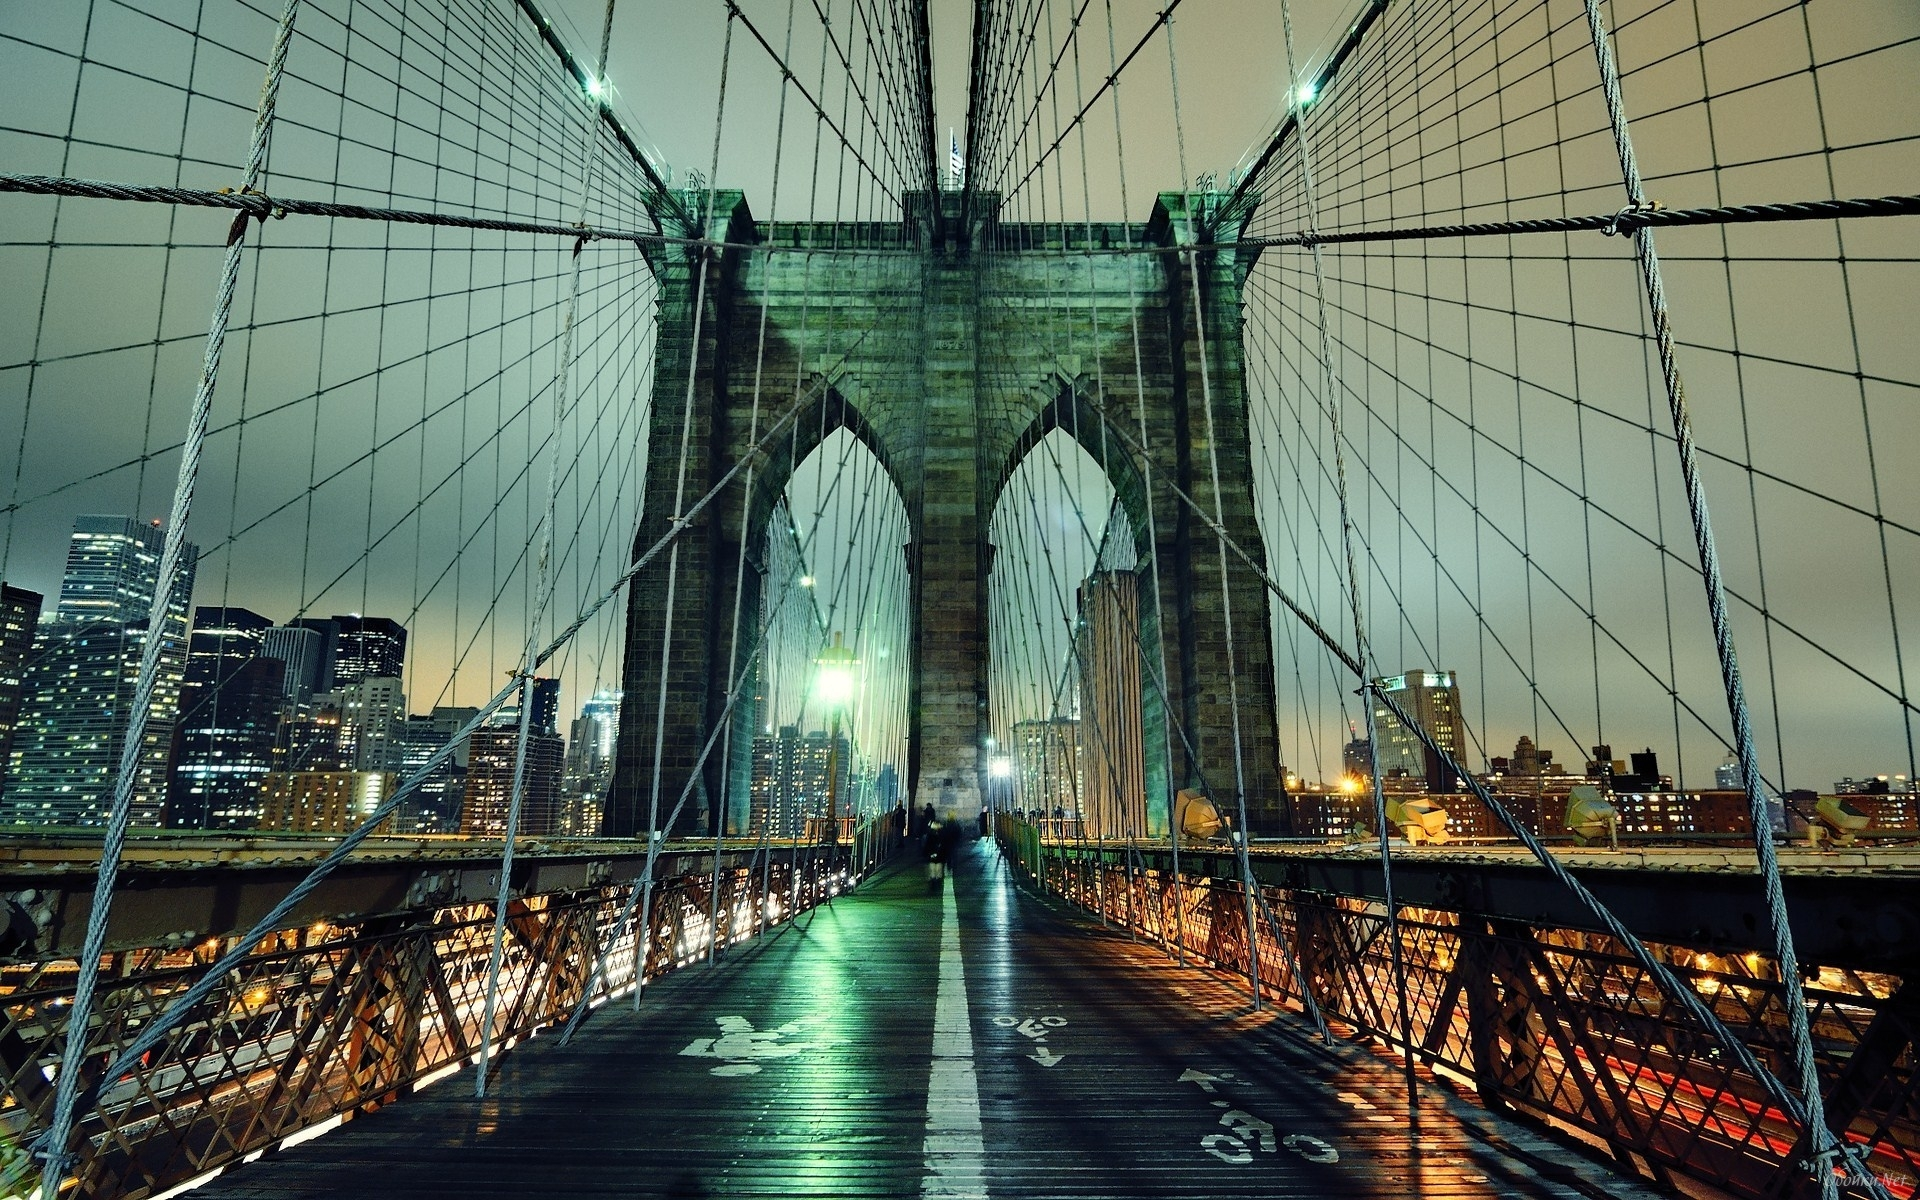 Brooklyn Bridge inside HD Desktop Wallpaper | HD Desktop Wallpaper